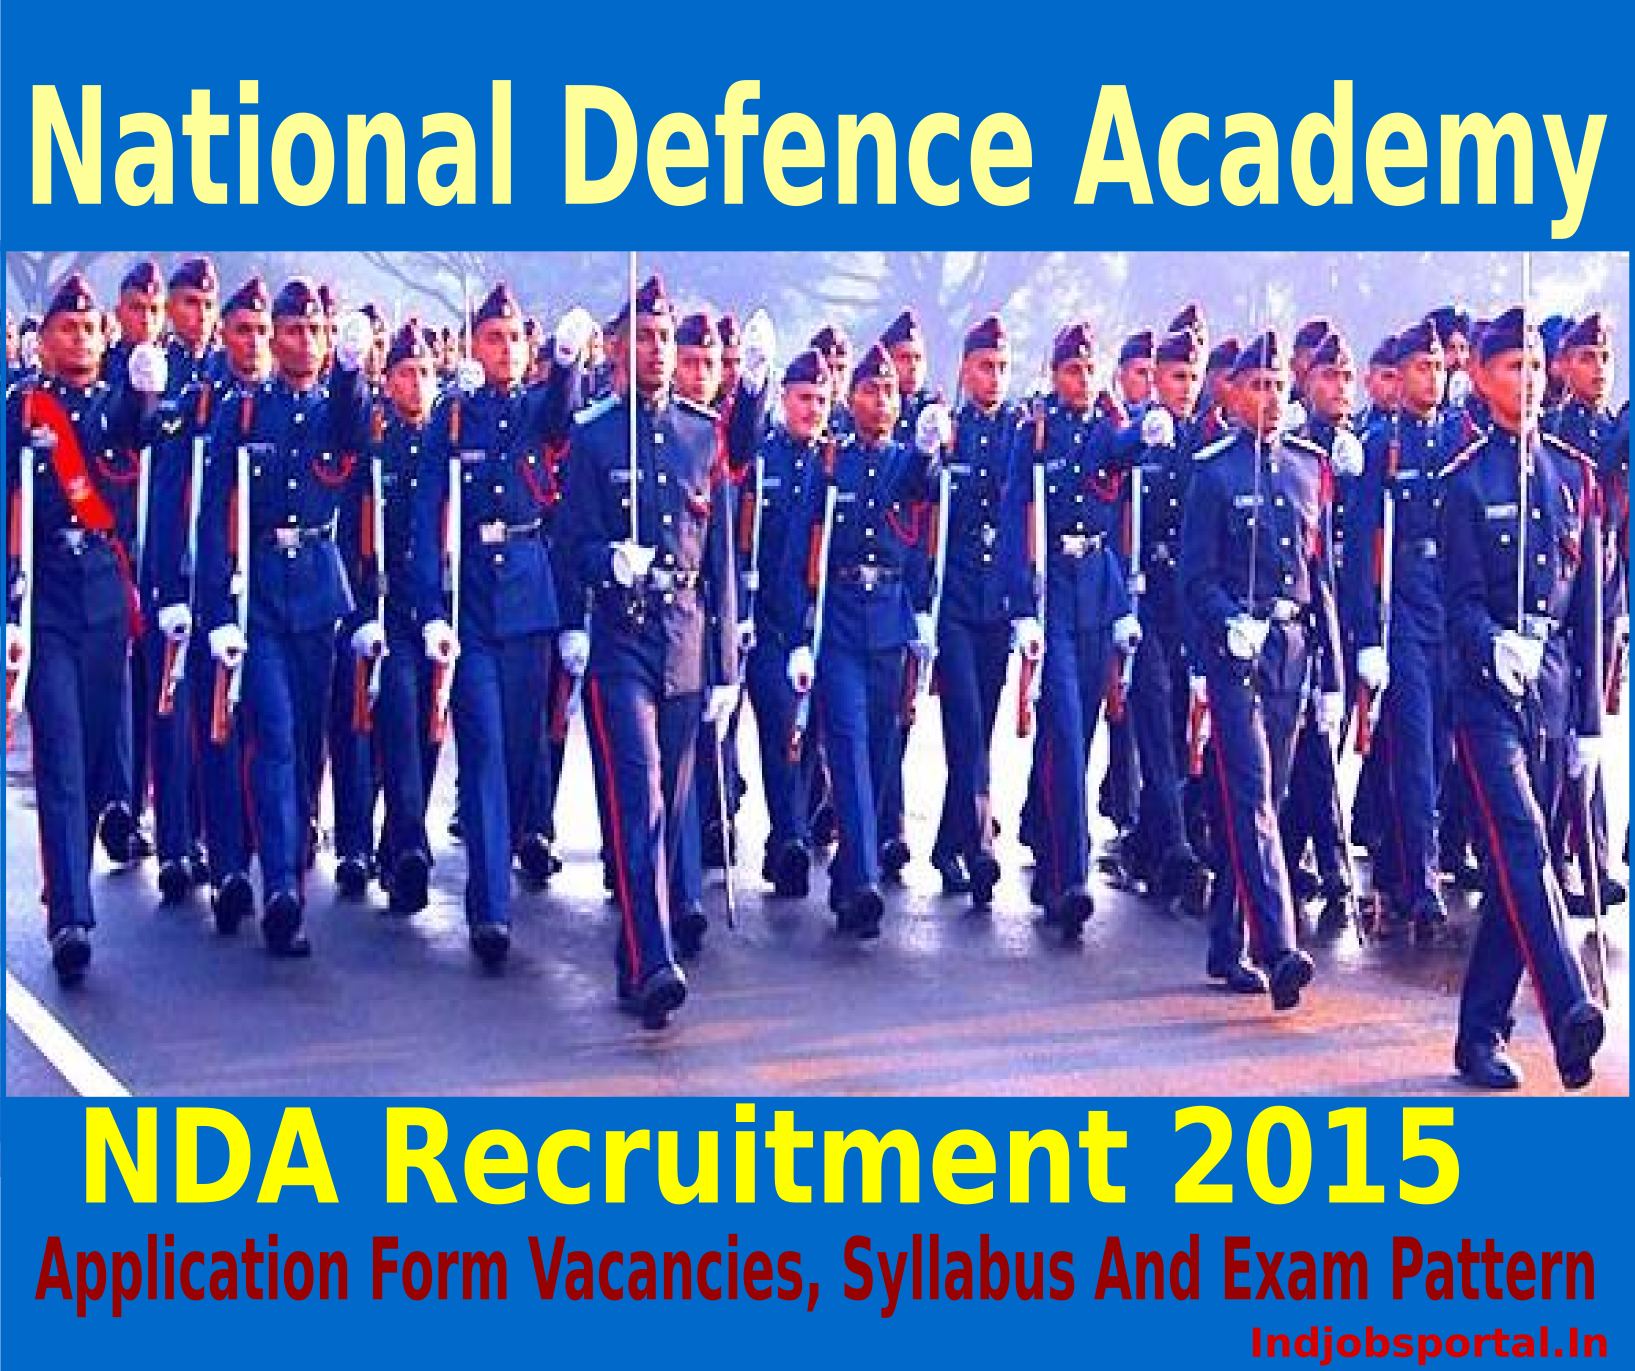 NDA Recruitment 2015 Application Form Vacancies, Syllabus And Exam Pattern